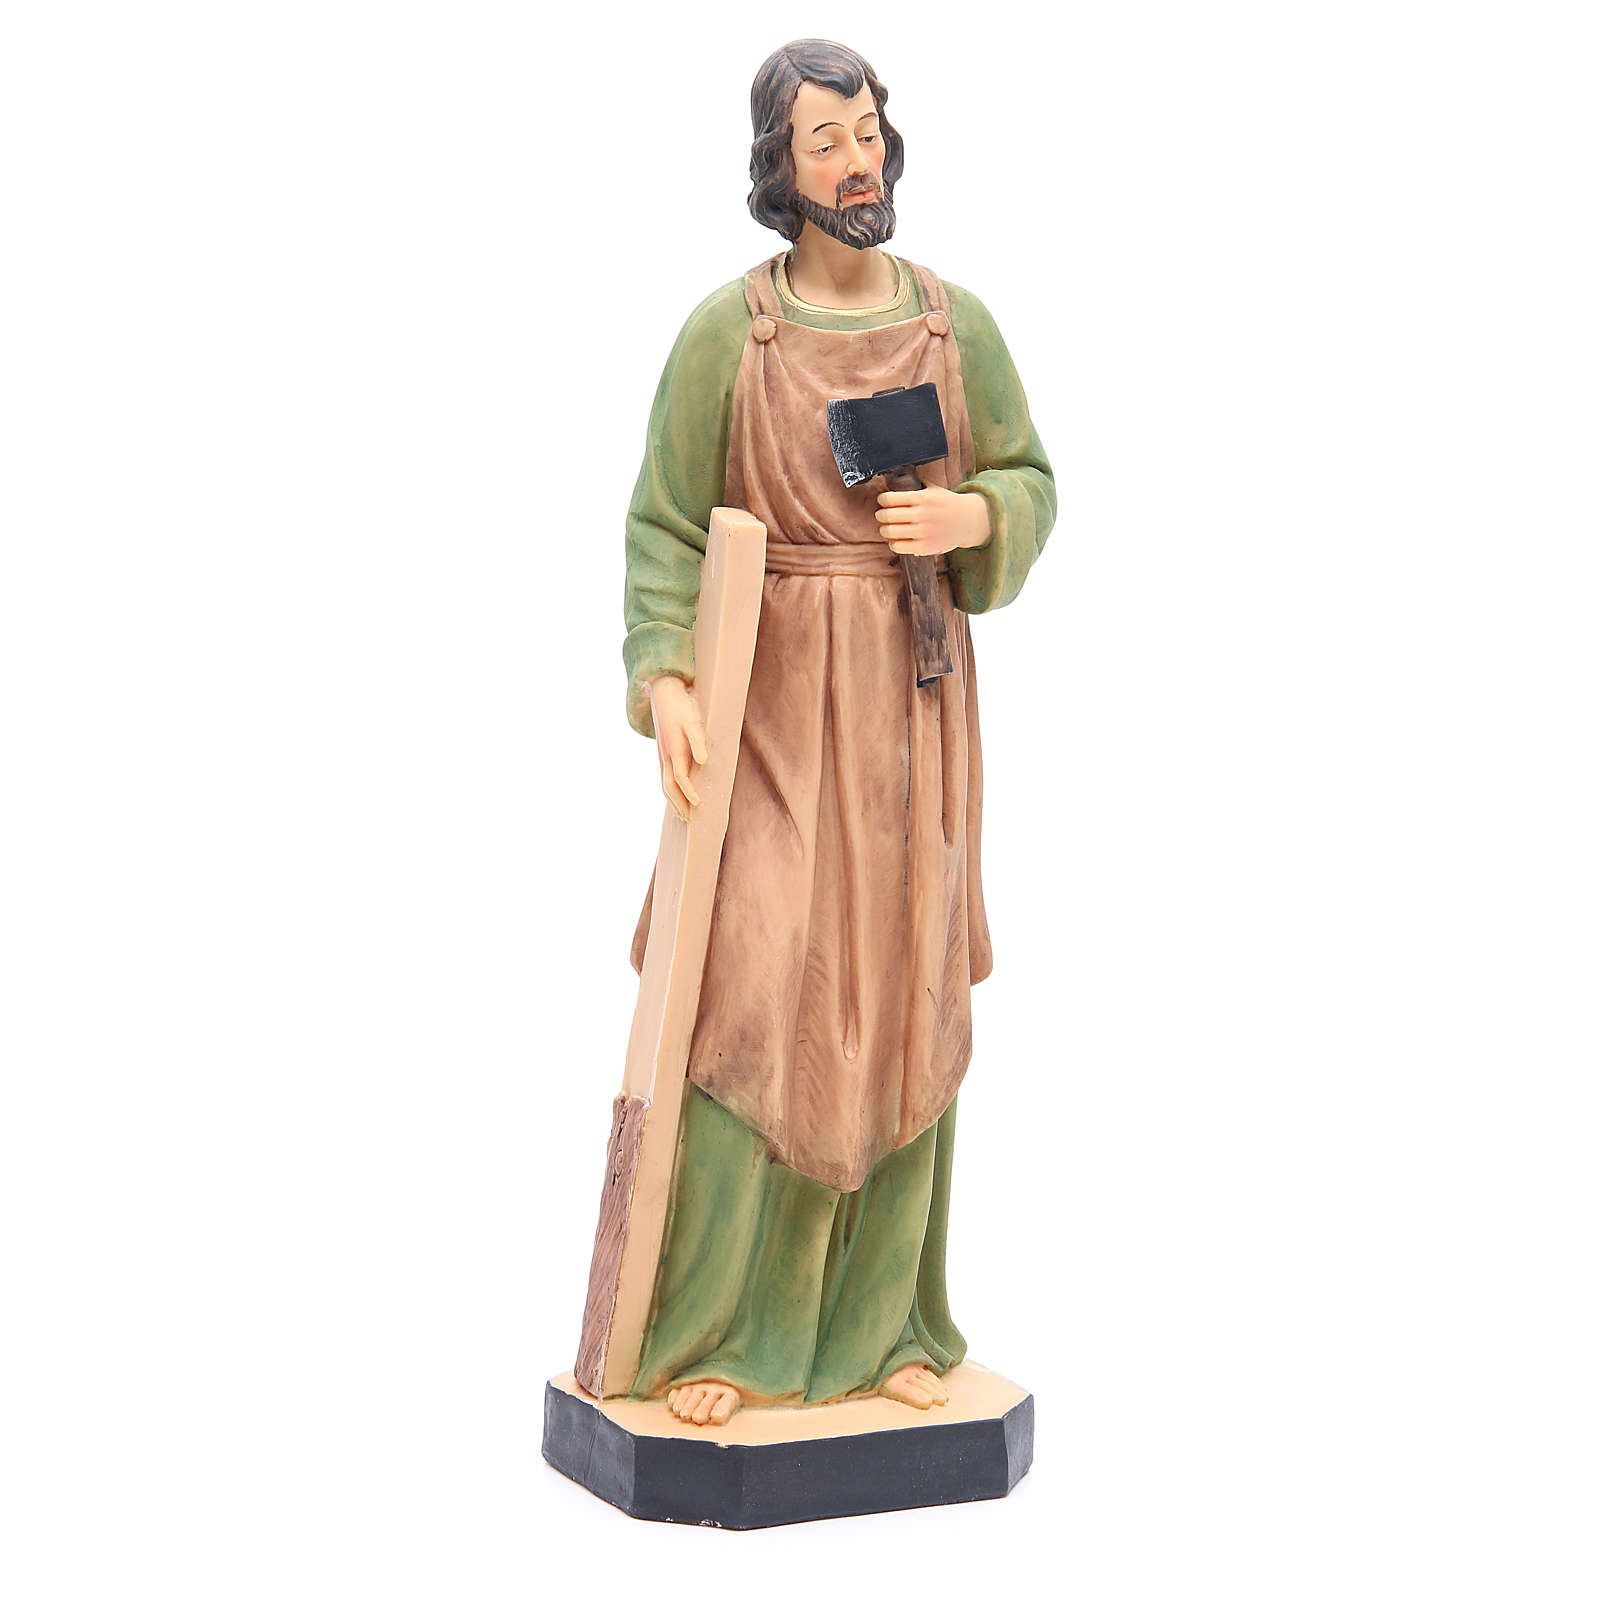 St Joseph resin statue with base 15.7 inches 4